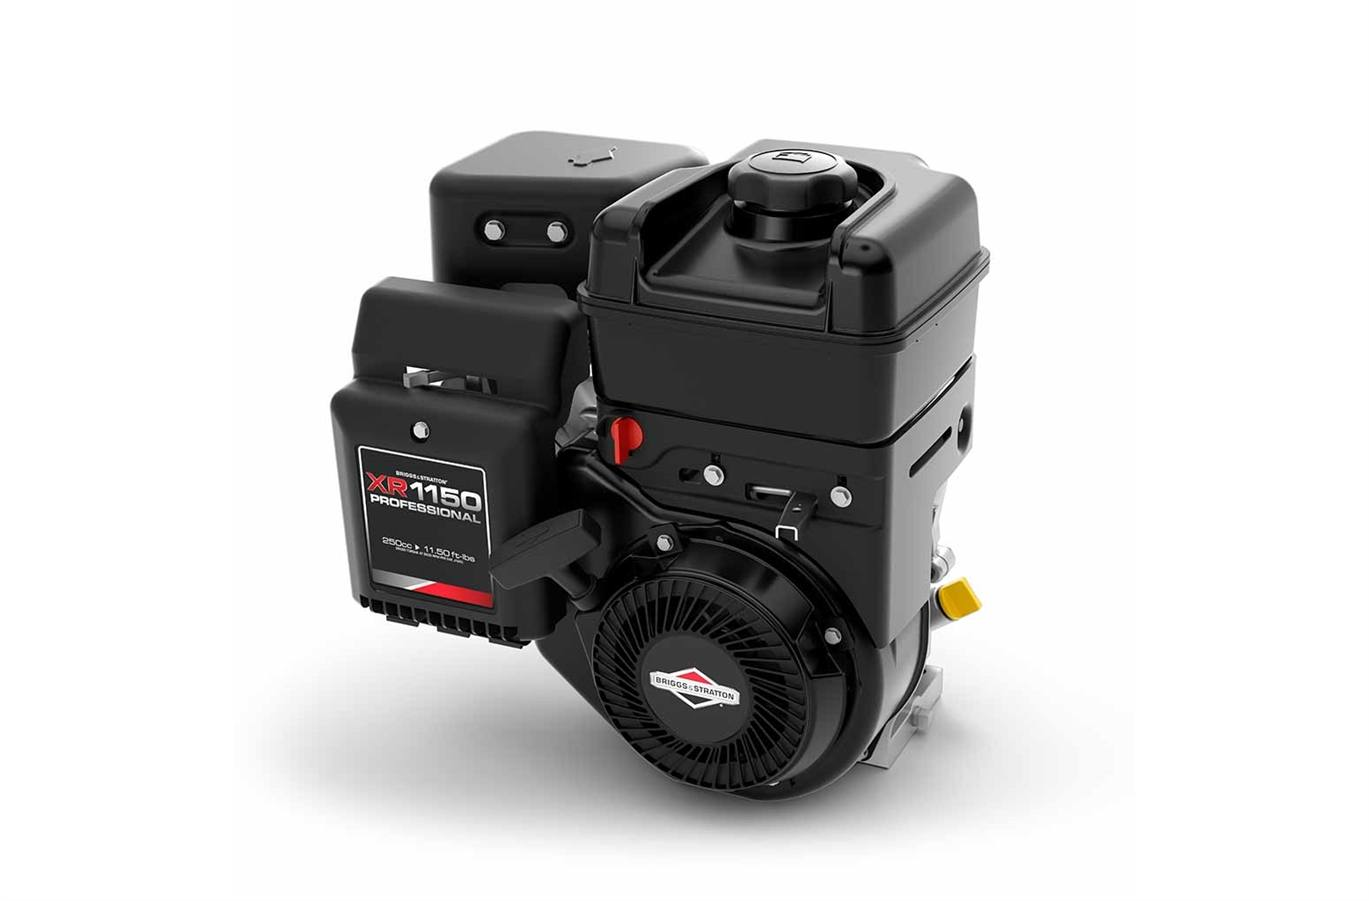 2018 Briggs Amp Stratton Xr1150 Professional Series For